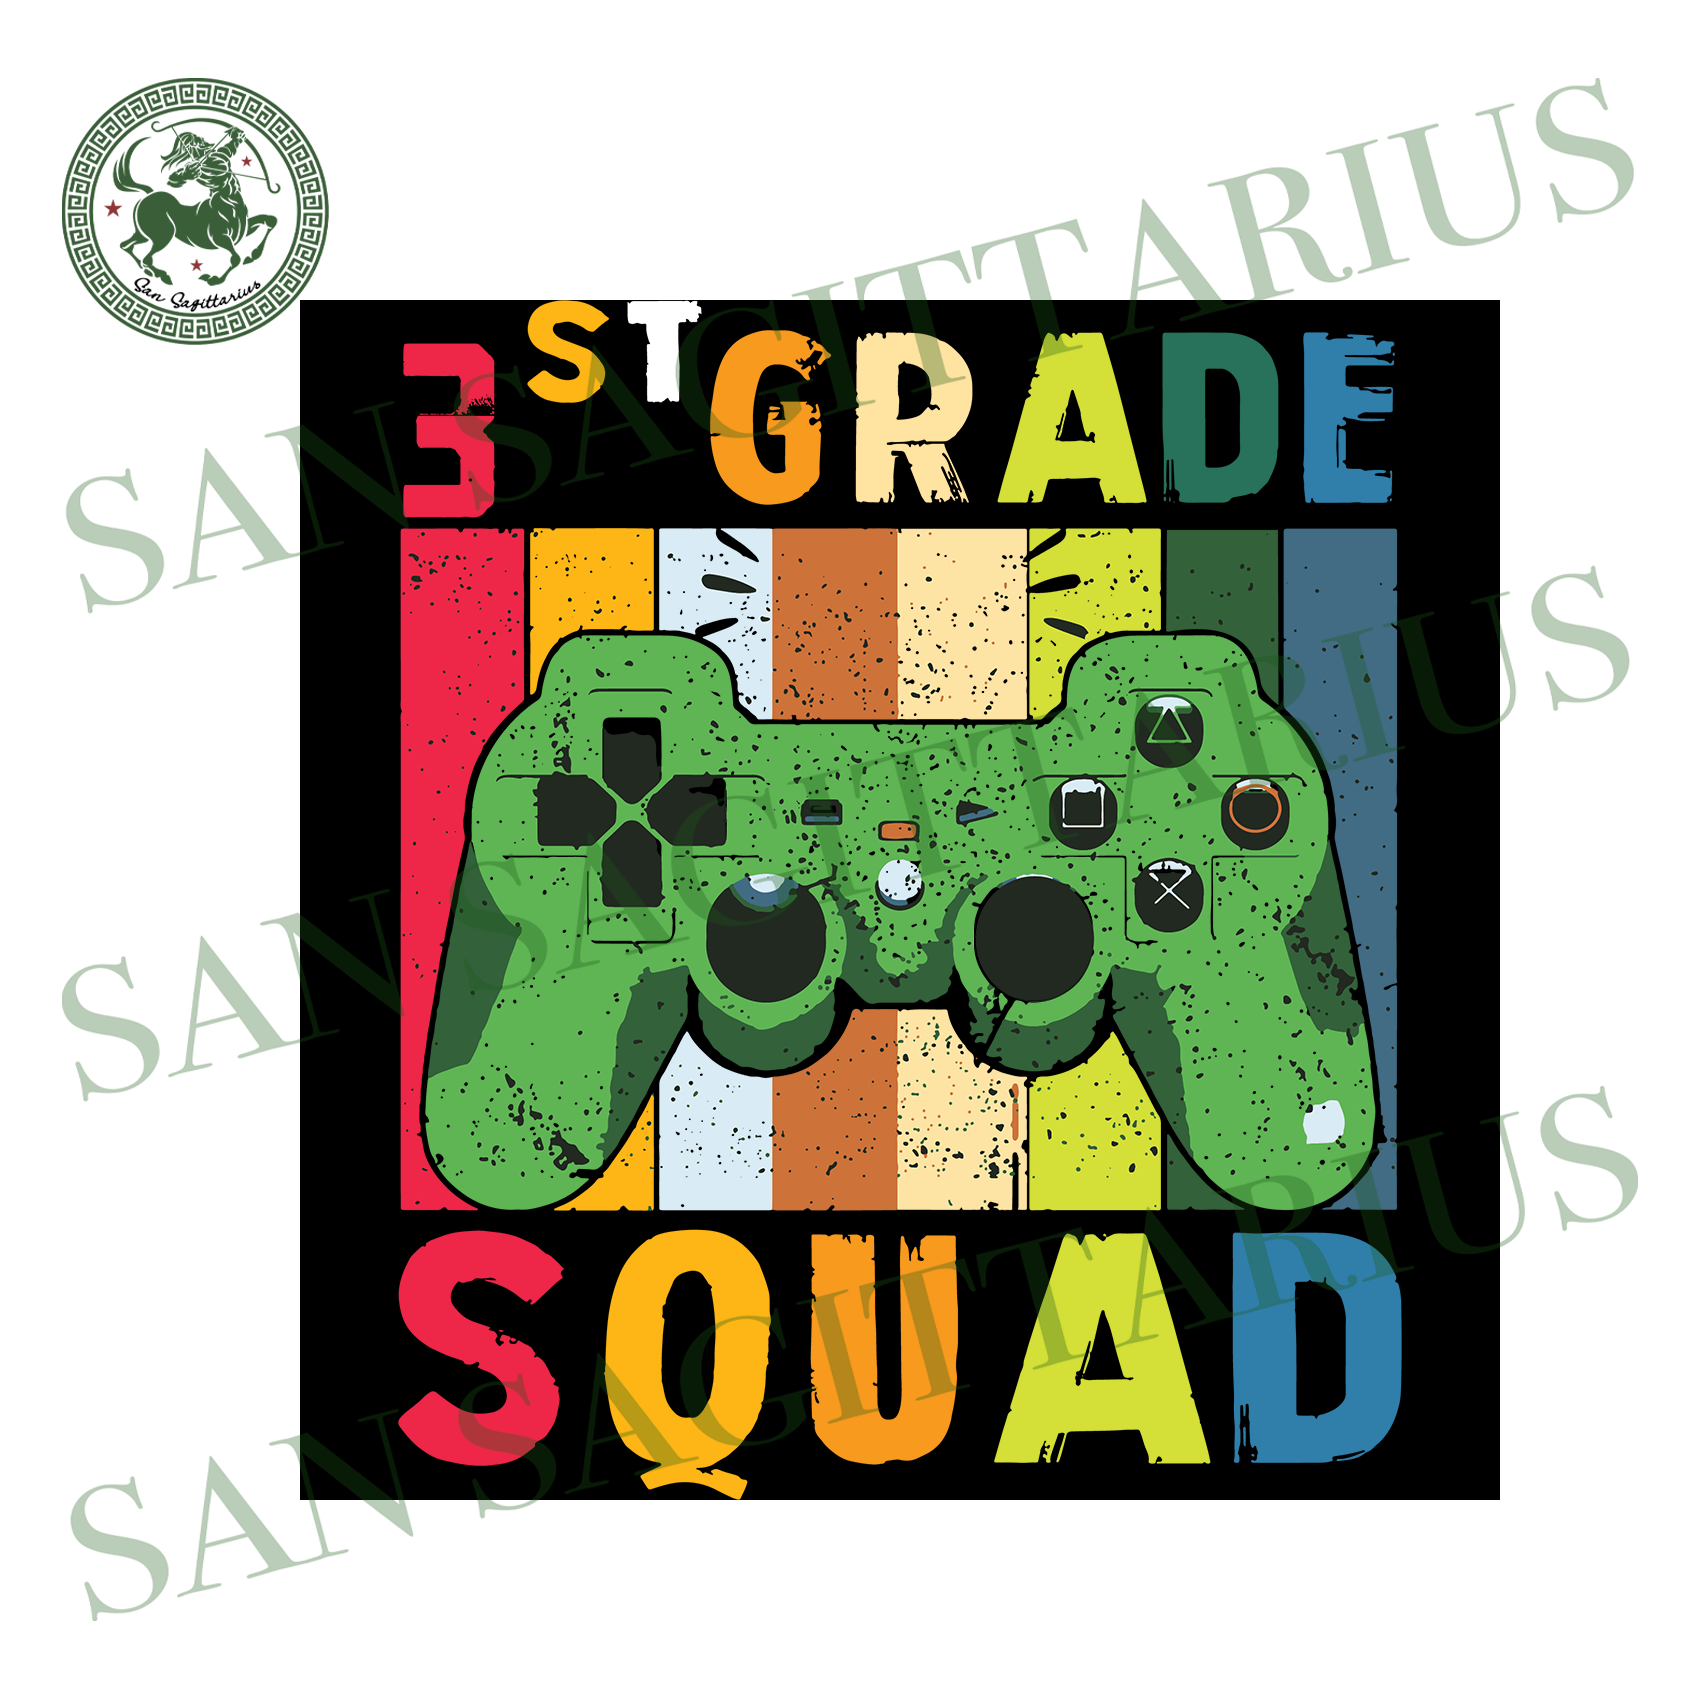 3rd Grade Squad,Game Svg, Gamer Shirt, Gift For Gamer Lover, 3rd Grade, 3rd Grade Svg,First Day Of School, School Svg,Back To School Shirt, Back To School Svg, Kinder Svg, Kindergarten Shirt,